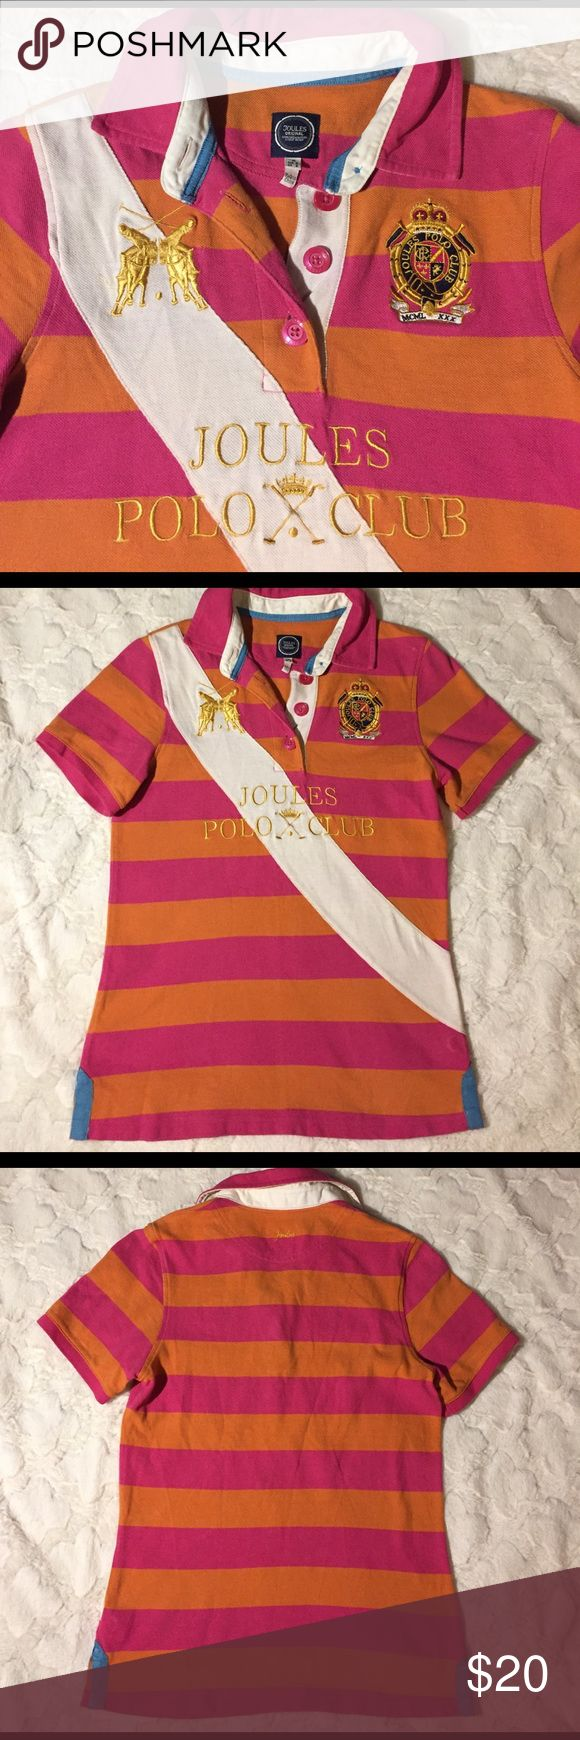 Joules Elita Orange & Hot Pink Polo Shirt, 6 Excellent used condition. No rips, tears or stains. 17' pit to pit. 24' shoulder to hem. Pink/Orange/cream/blue. Extra button. 100% cotton. Joules Tops Button Down Shirts